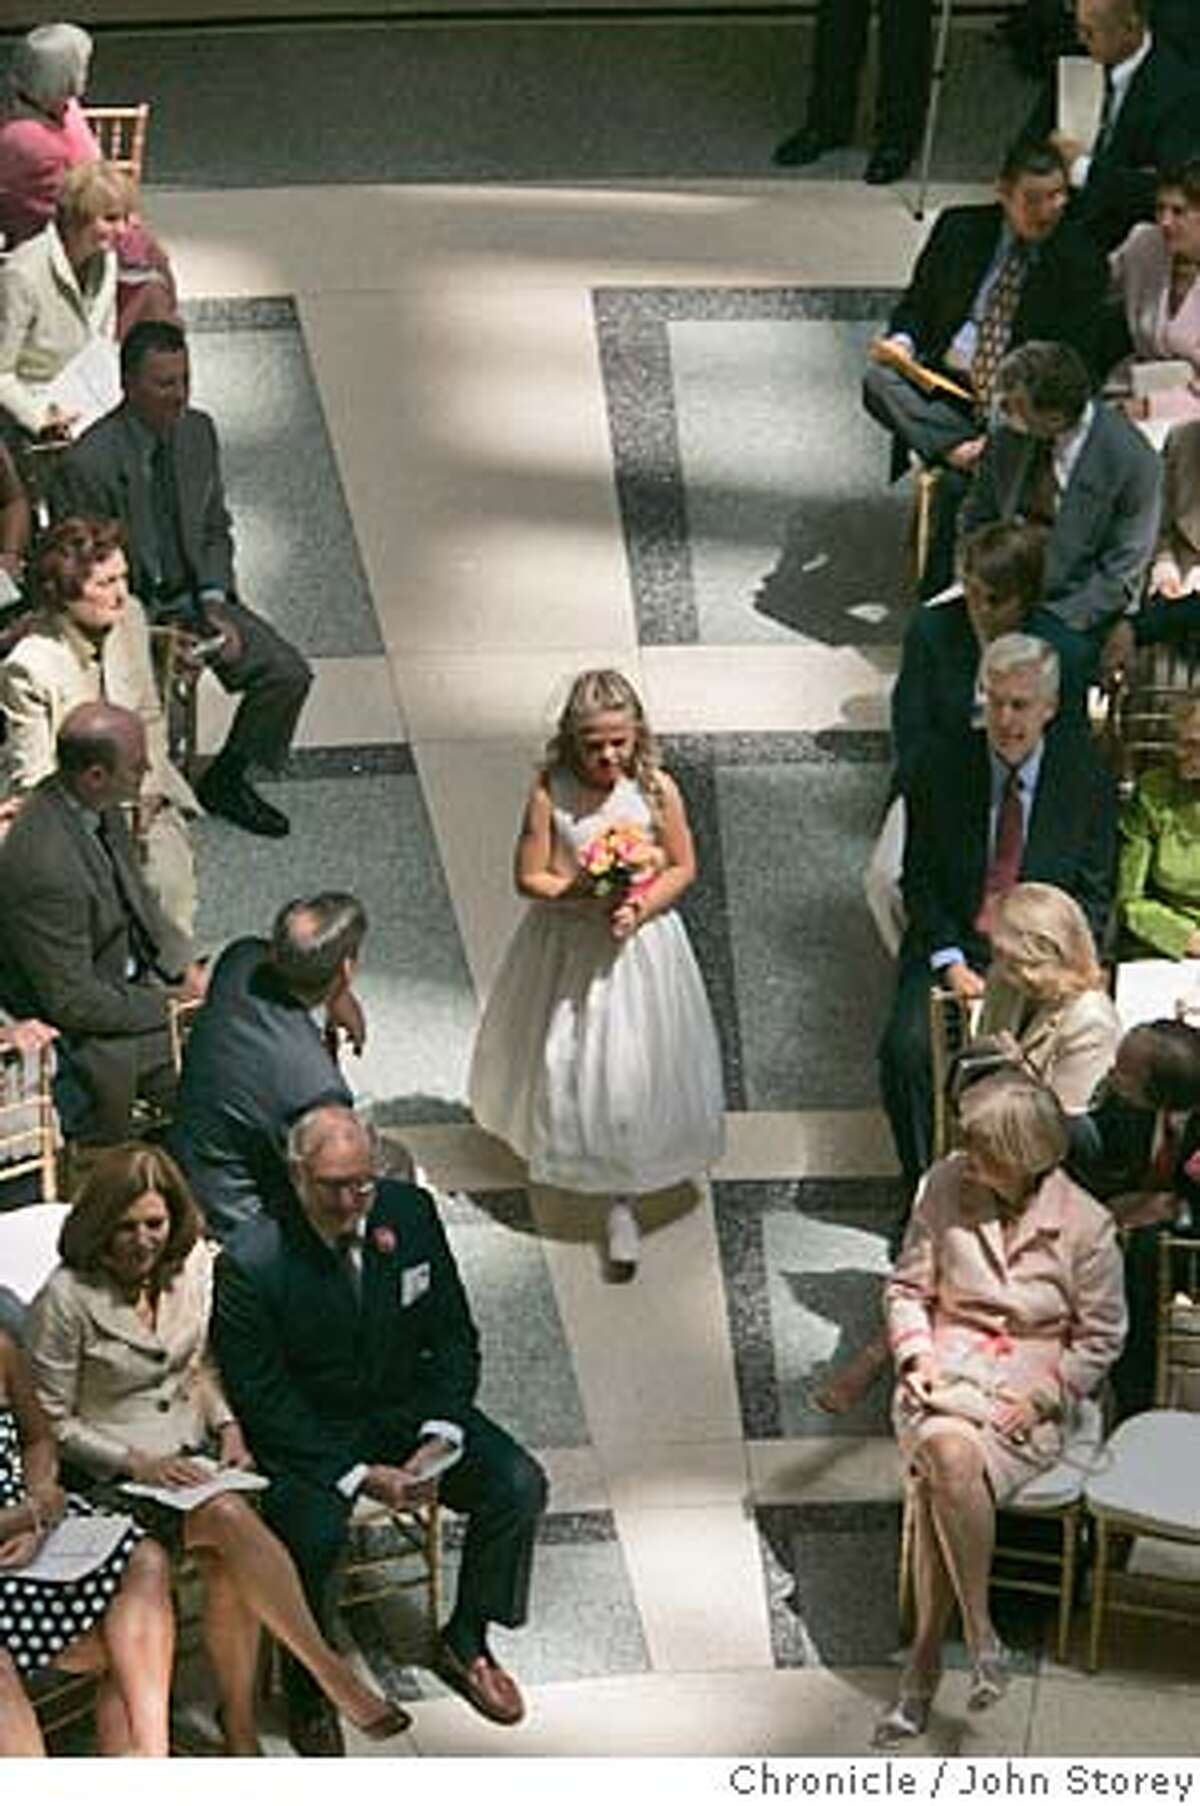 Wedding_jrs_0192.jpg A flower walks down the aisle before the ceremony. Mayor Oakland Jerry Brown gets married to Anne Gust by Senator Diane Feinstein at the Rotunda Building in Oakland. John Storey Oakland Event on 6/18/05 MANDATORY CREDIT FOR PHOTOG AND SF CHRONICLE/ -MAGS OUT